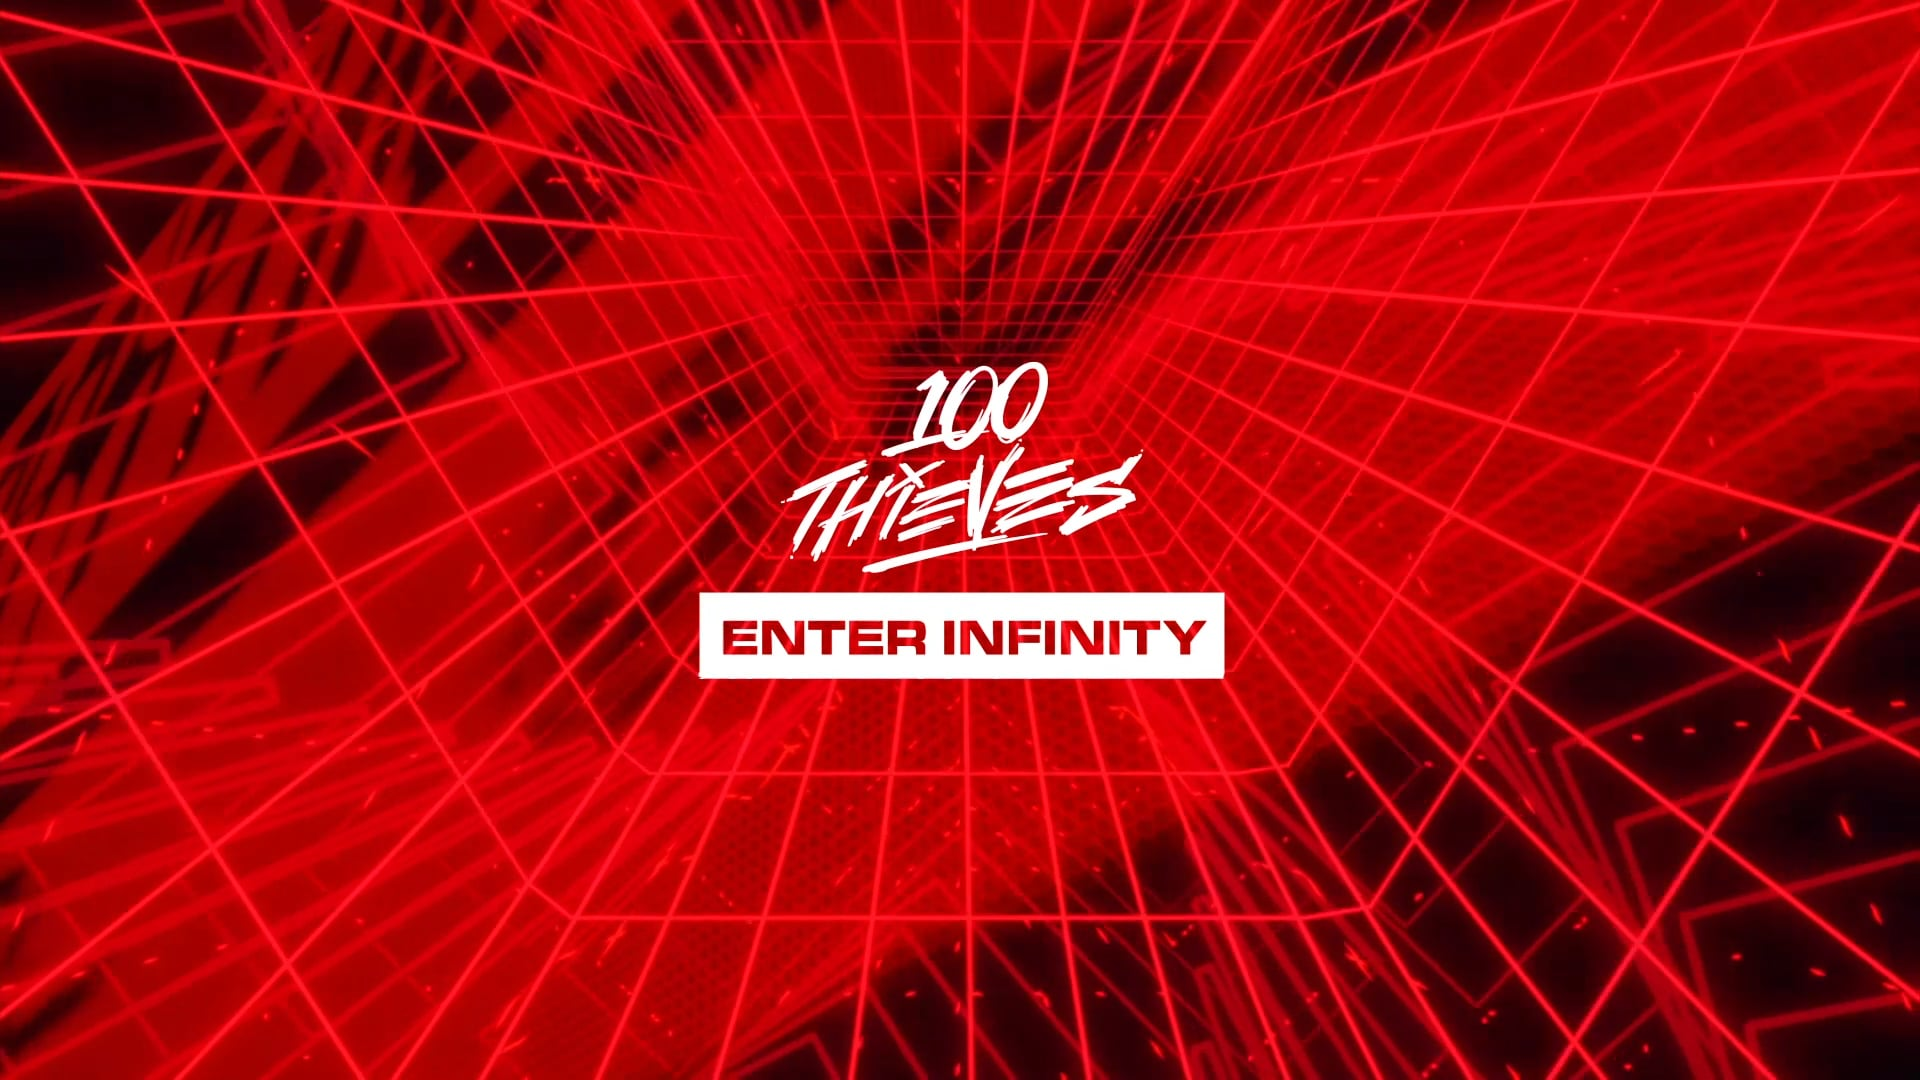 100 Thieves :: Enter Infinity